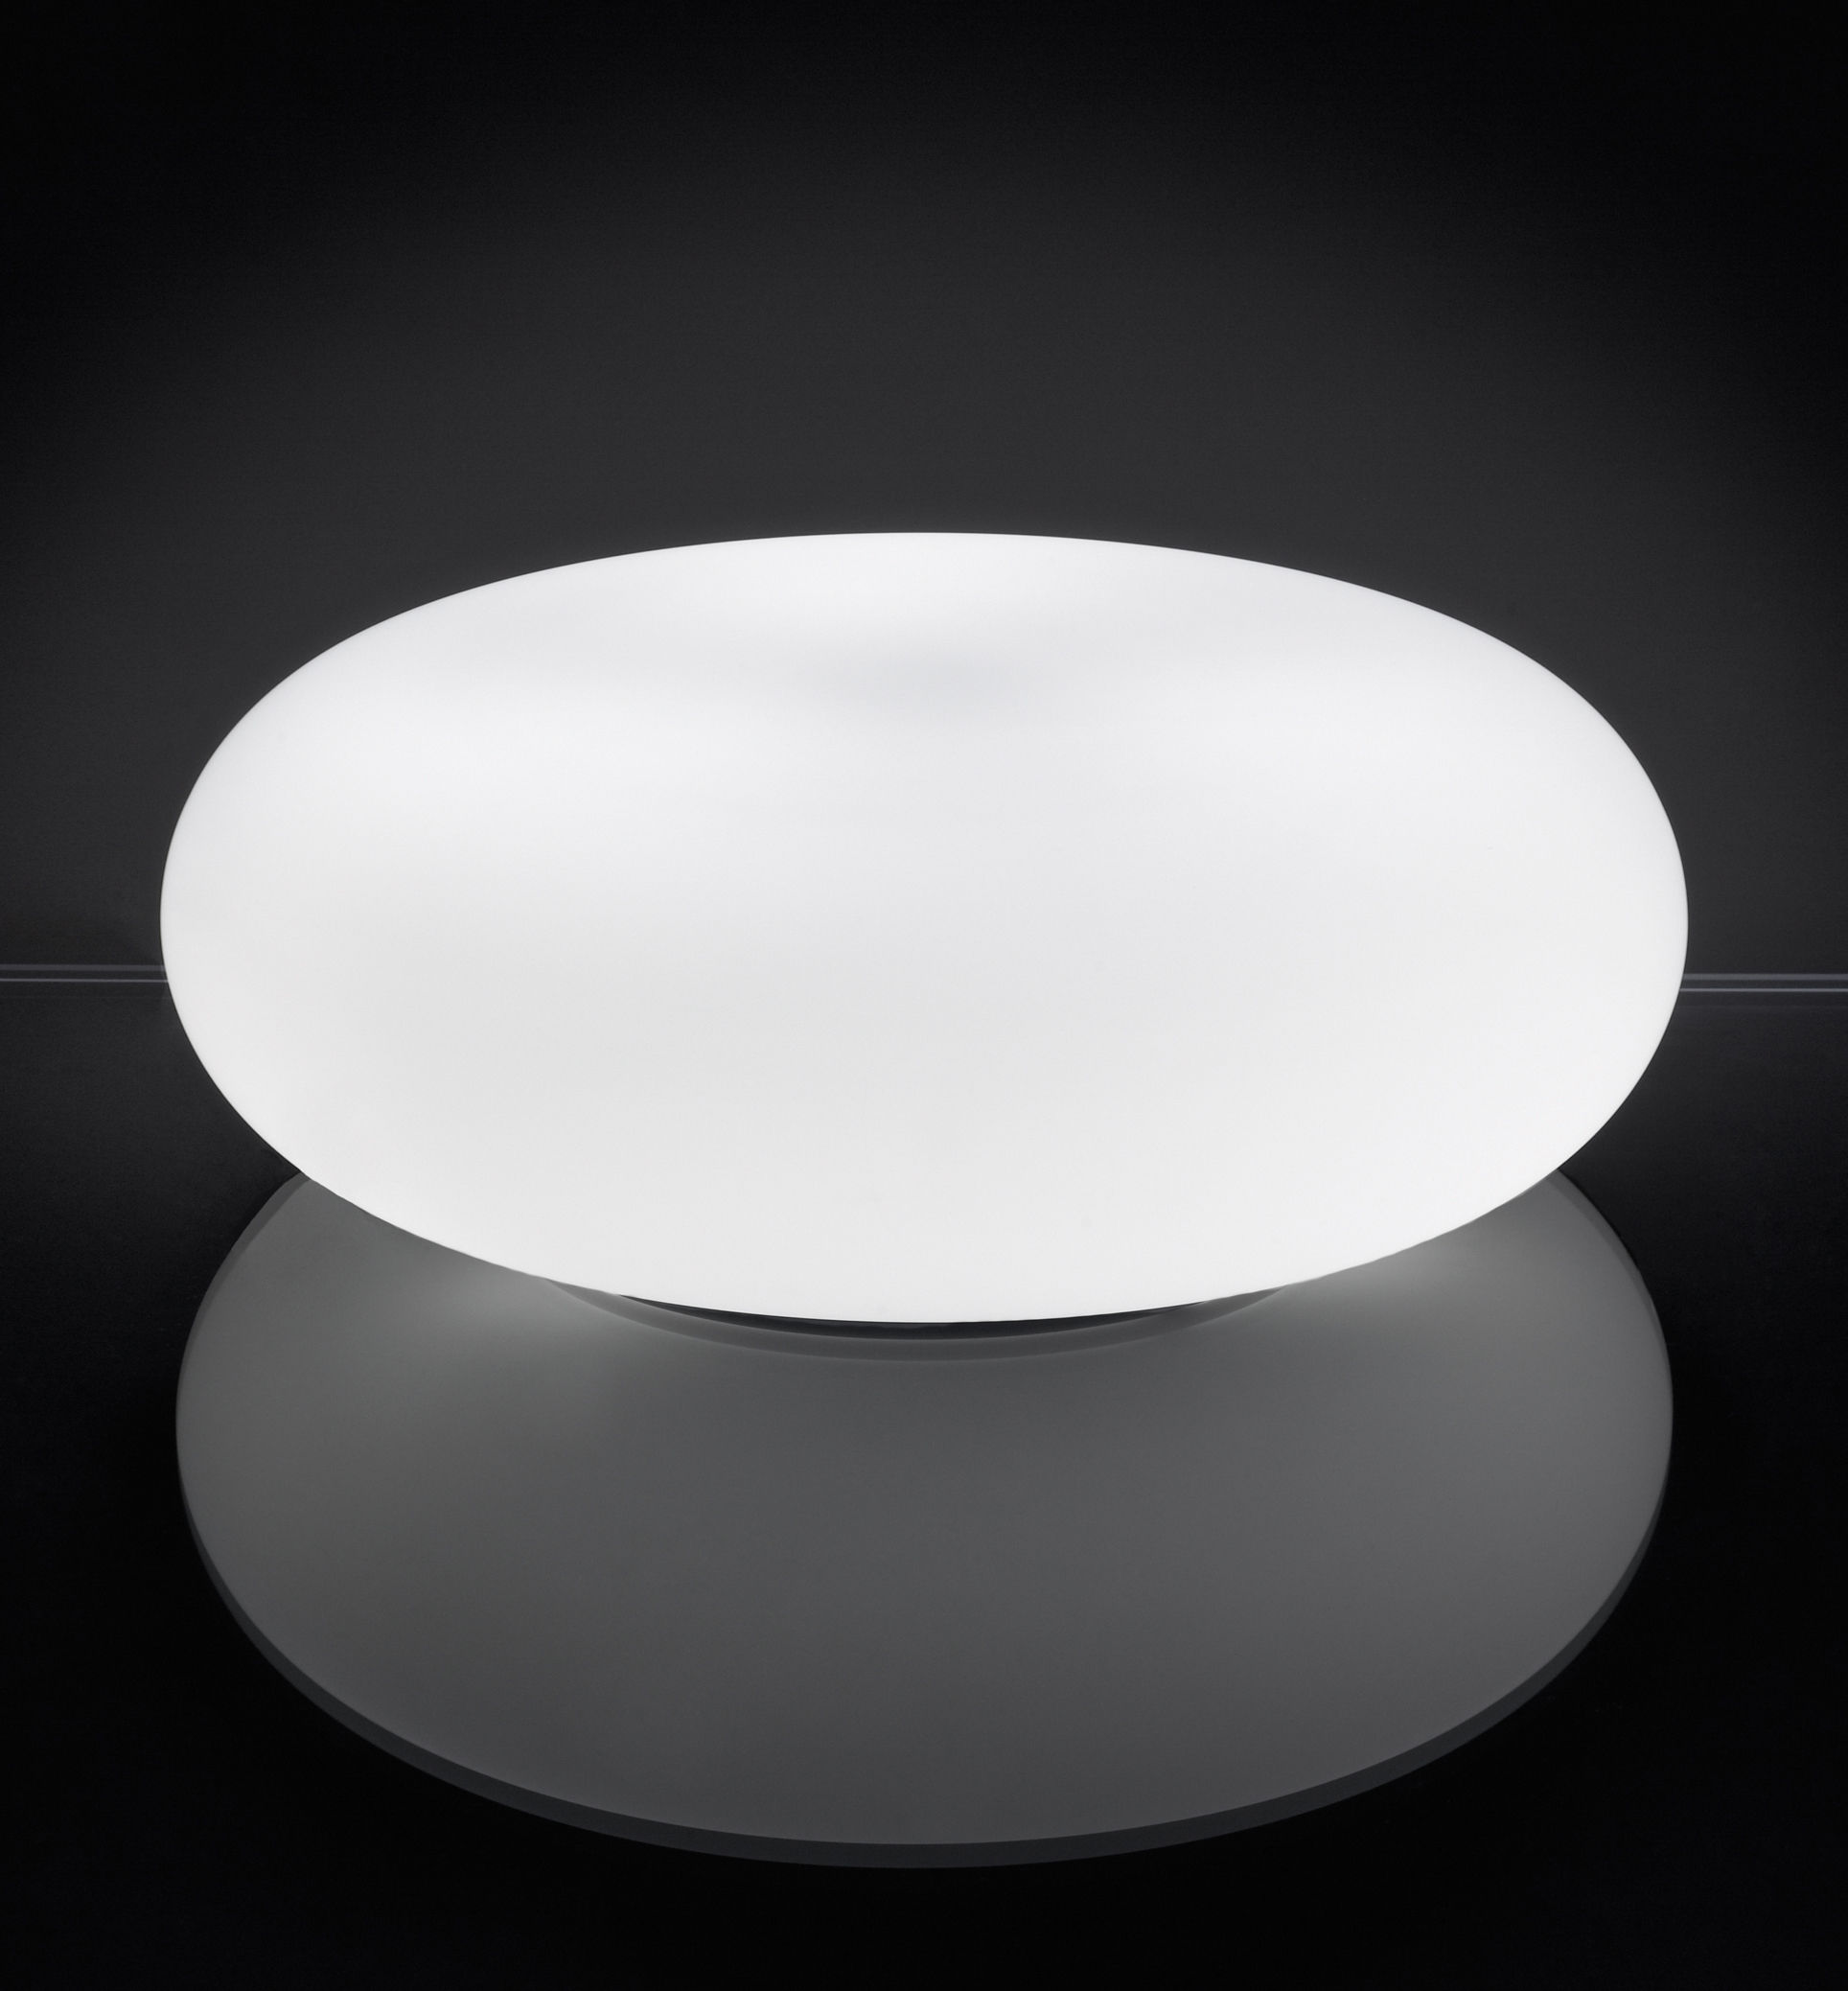 Lighting - Table Lamps - Itka Table lamp - Ø 35 cm by Danese Light - White - Ø 35 cm - Glass, Metal